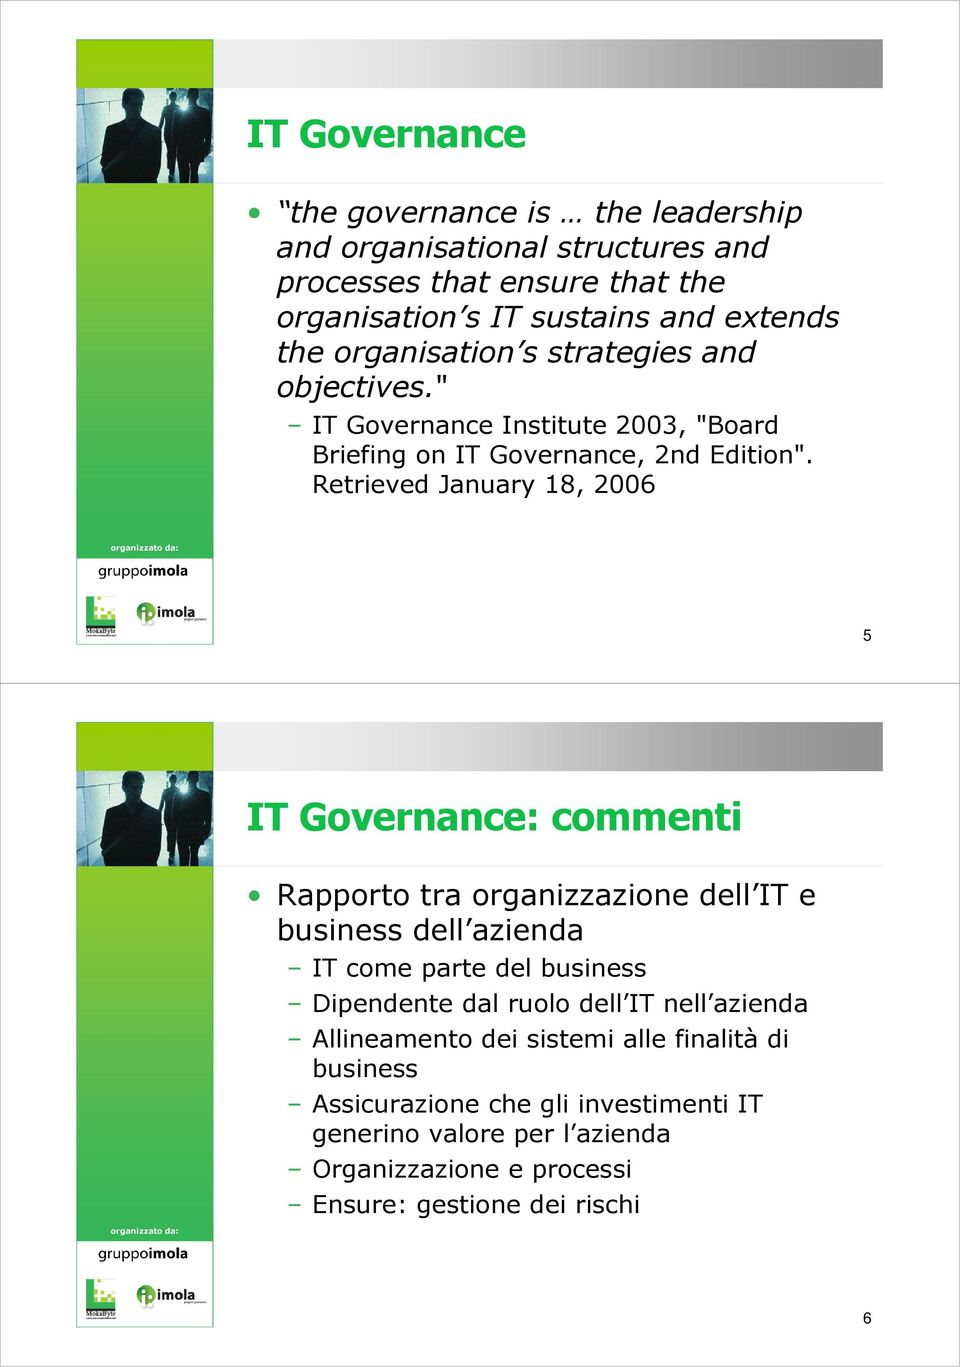 Retrieved January 18, 2006 5 IT Governance: commenti Rapporto tra organizzazione dell IT e business dell azienda IT come parte del business Dipendente dal